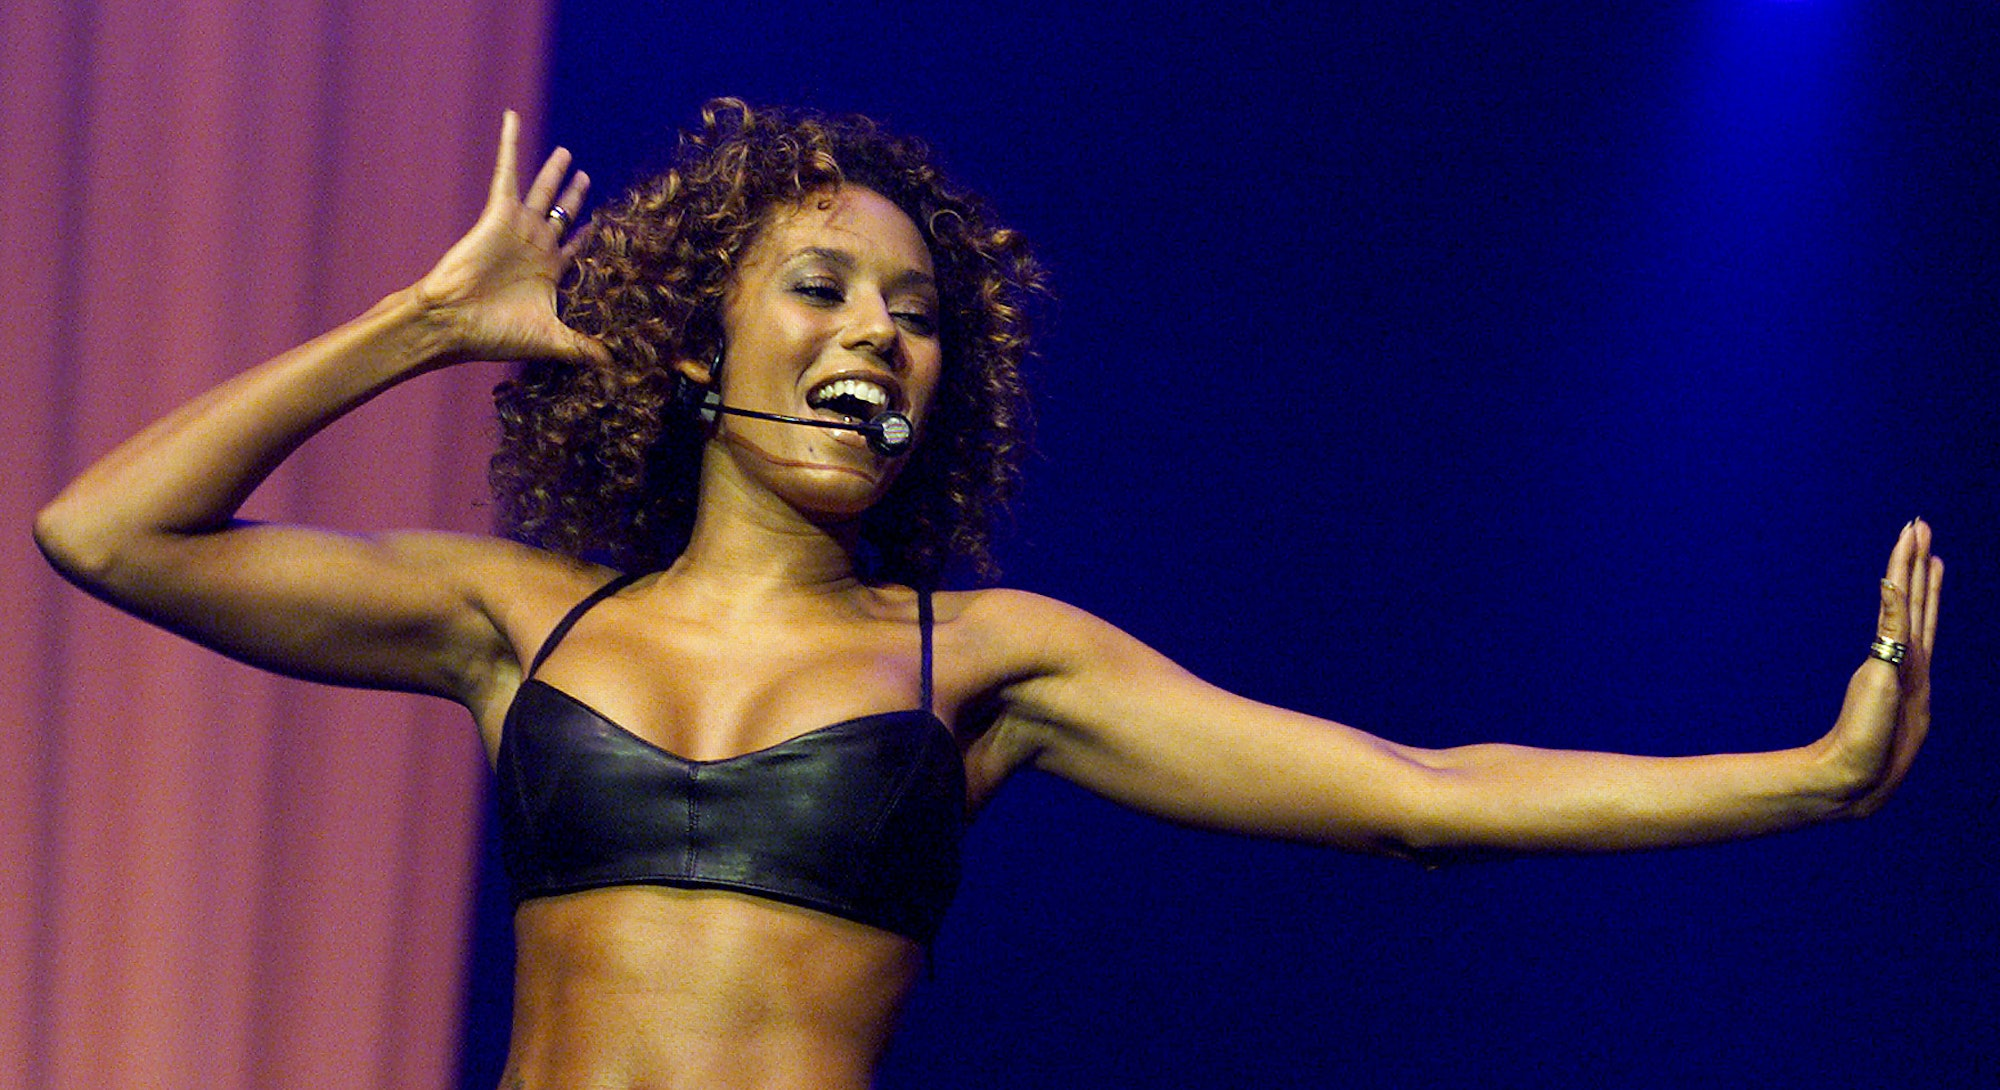 Mel B performing with the Spice Girls.